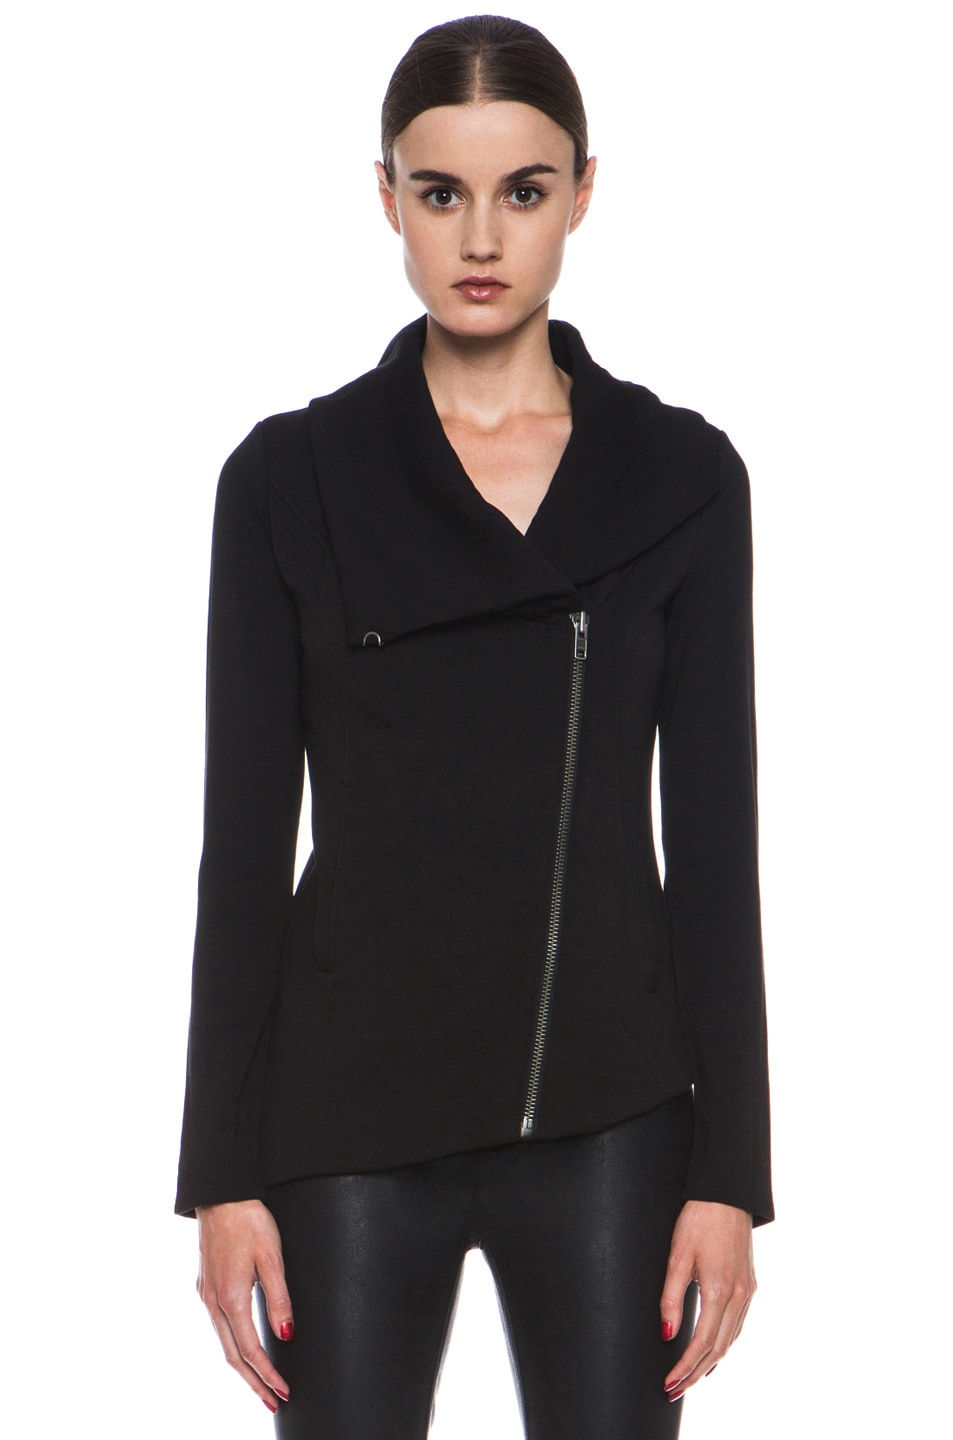 Image 2 of HELMUT Helmut Lang Villus Zip Up Sweatshirt Jacket in Black